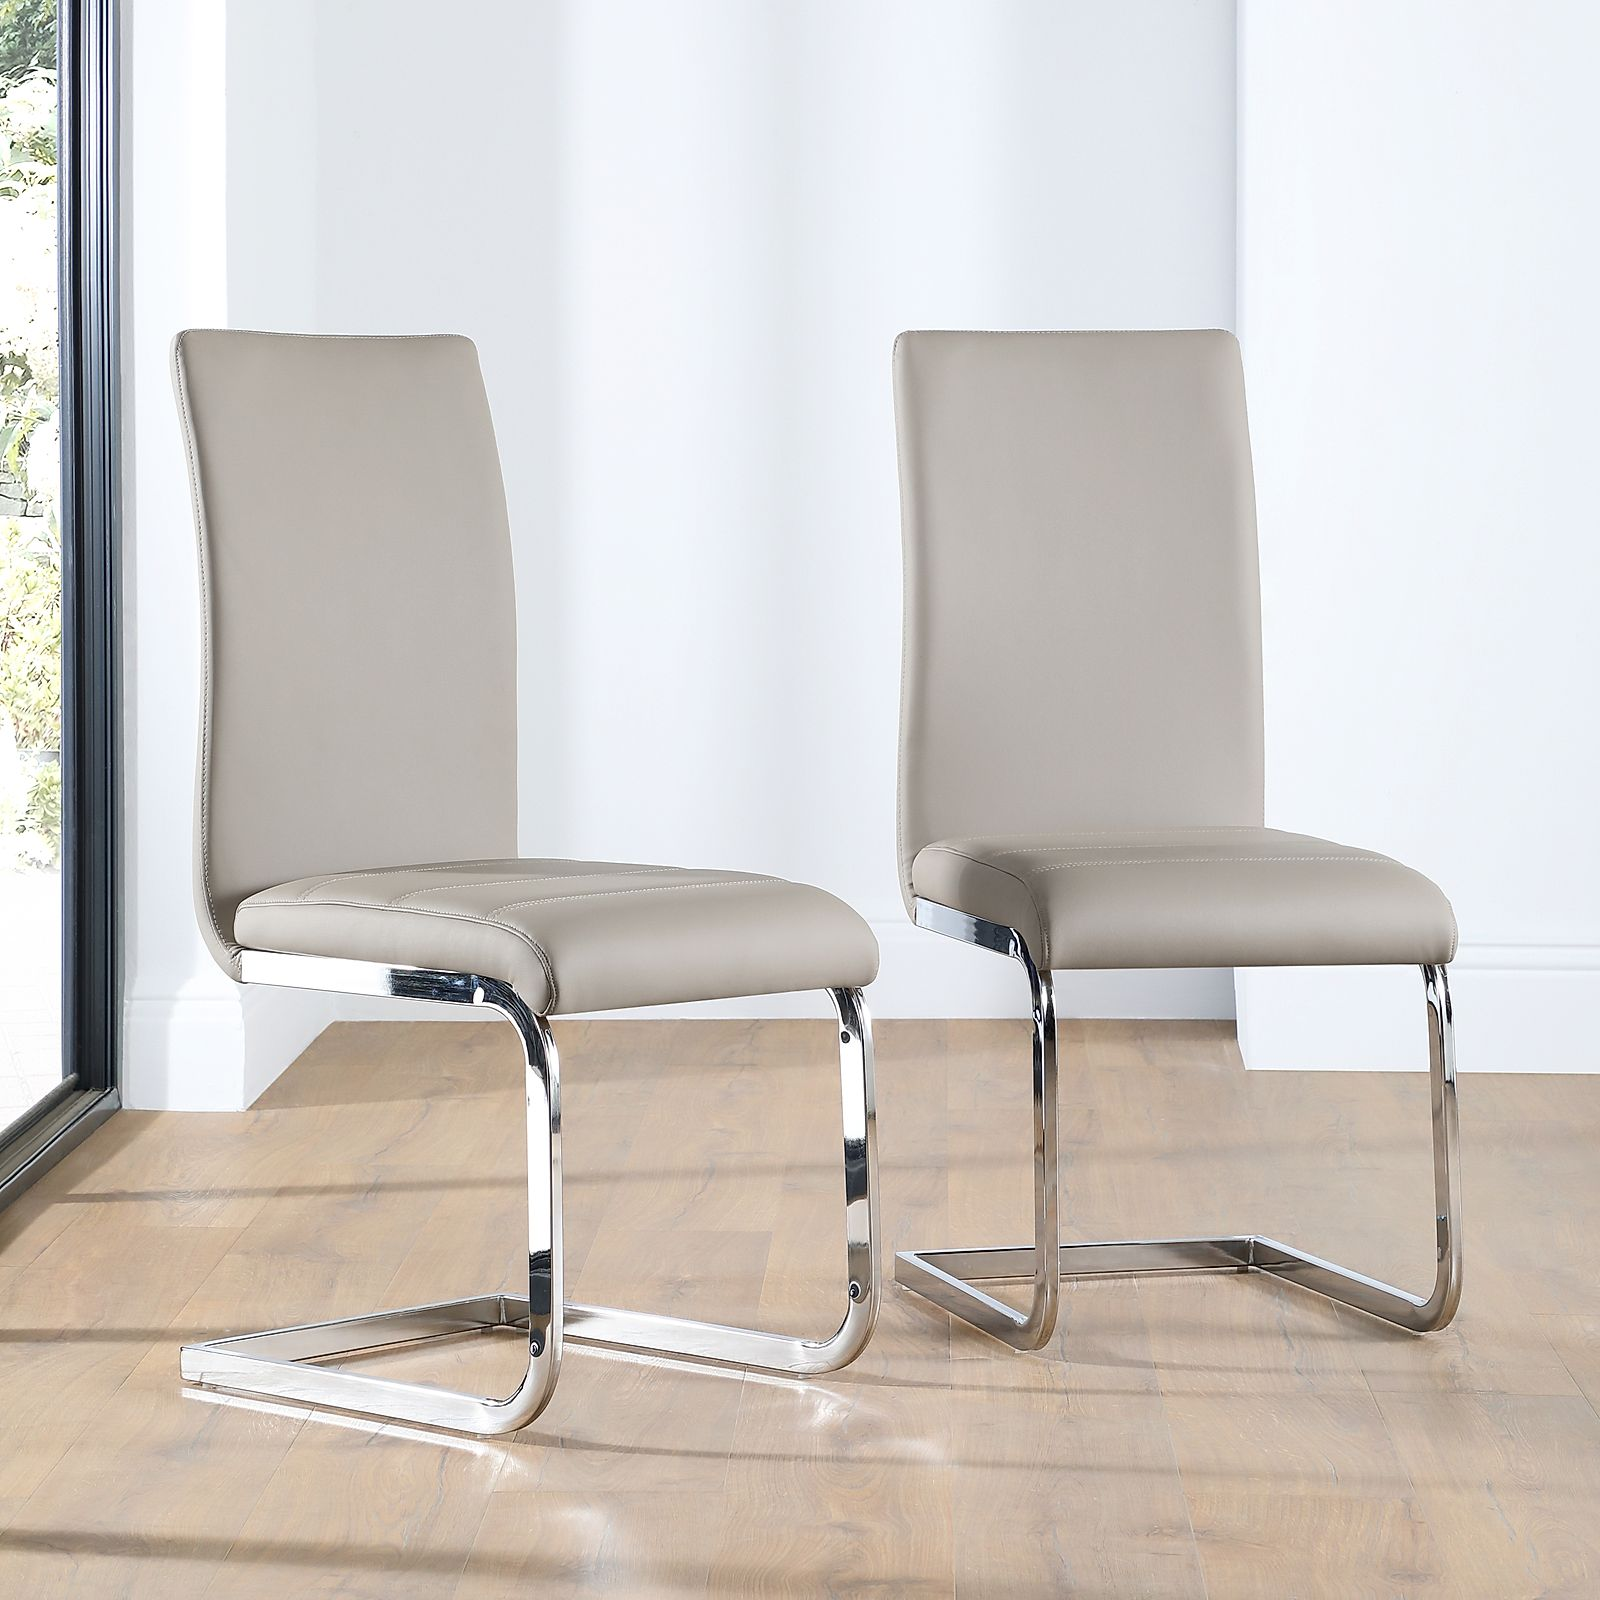 Perth Leather Dining Chair Taupe Furniture Choice